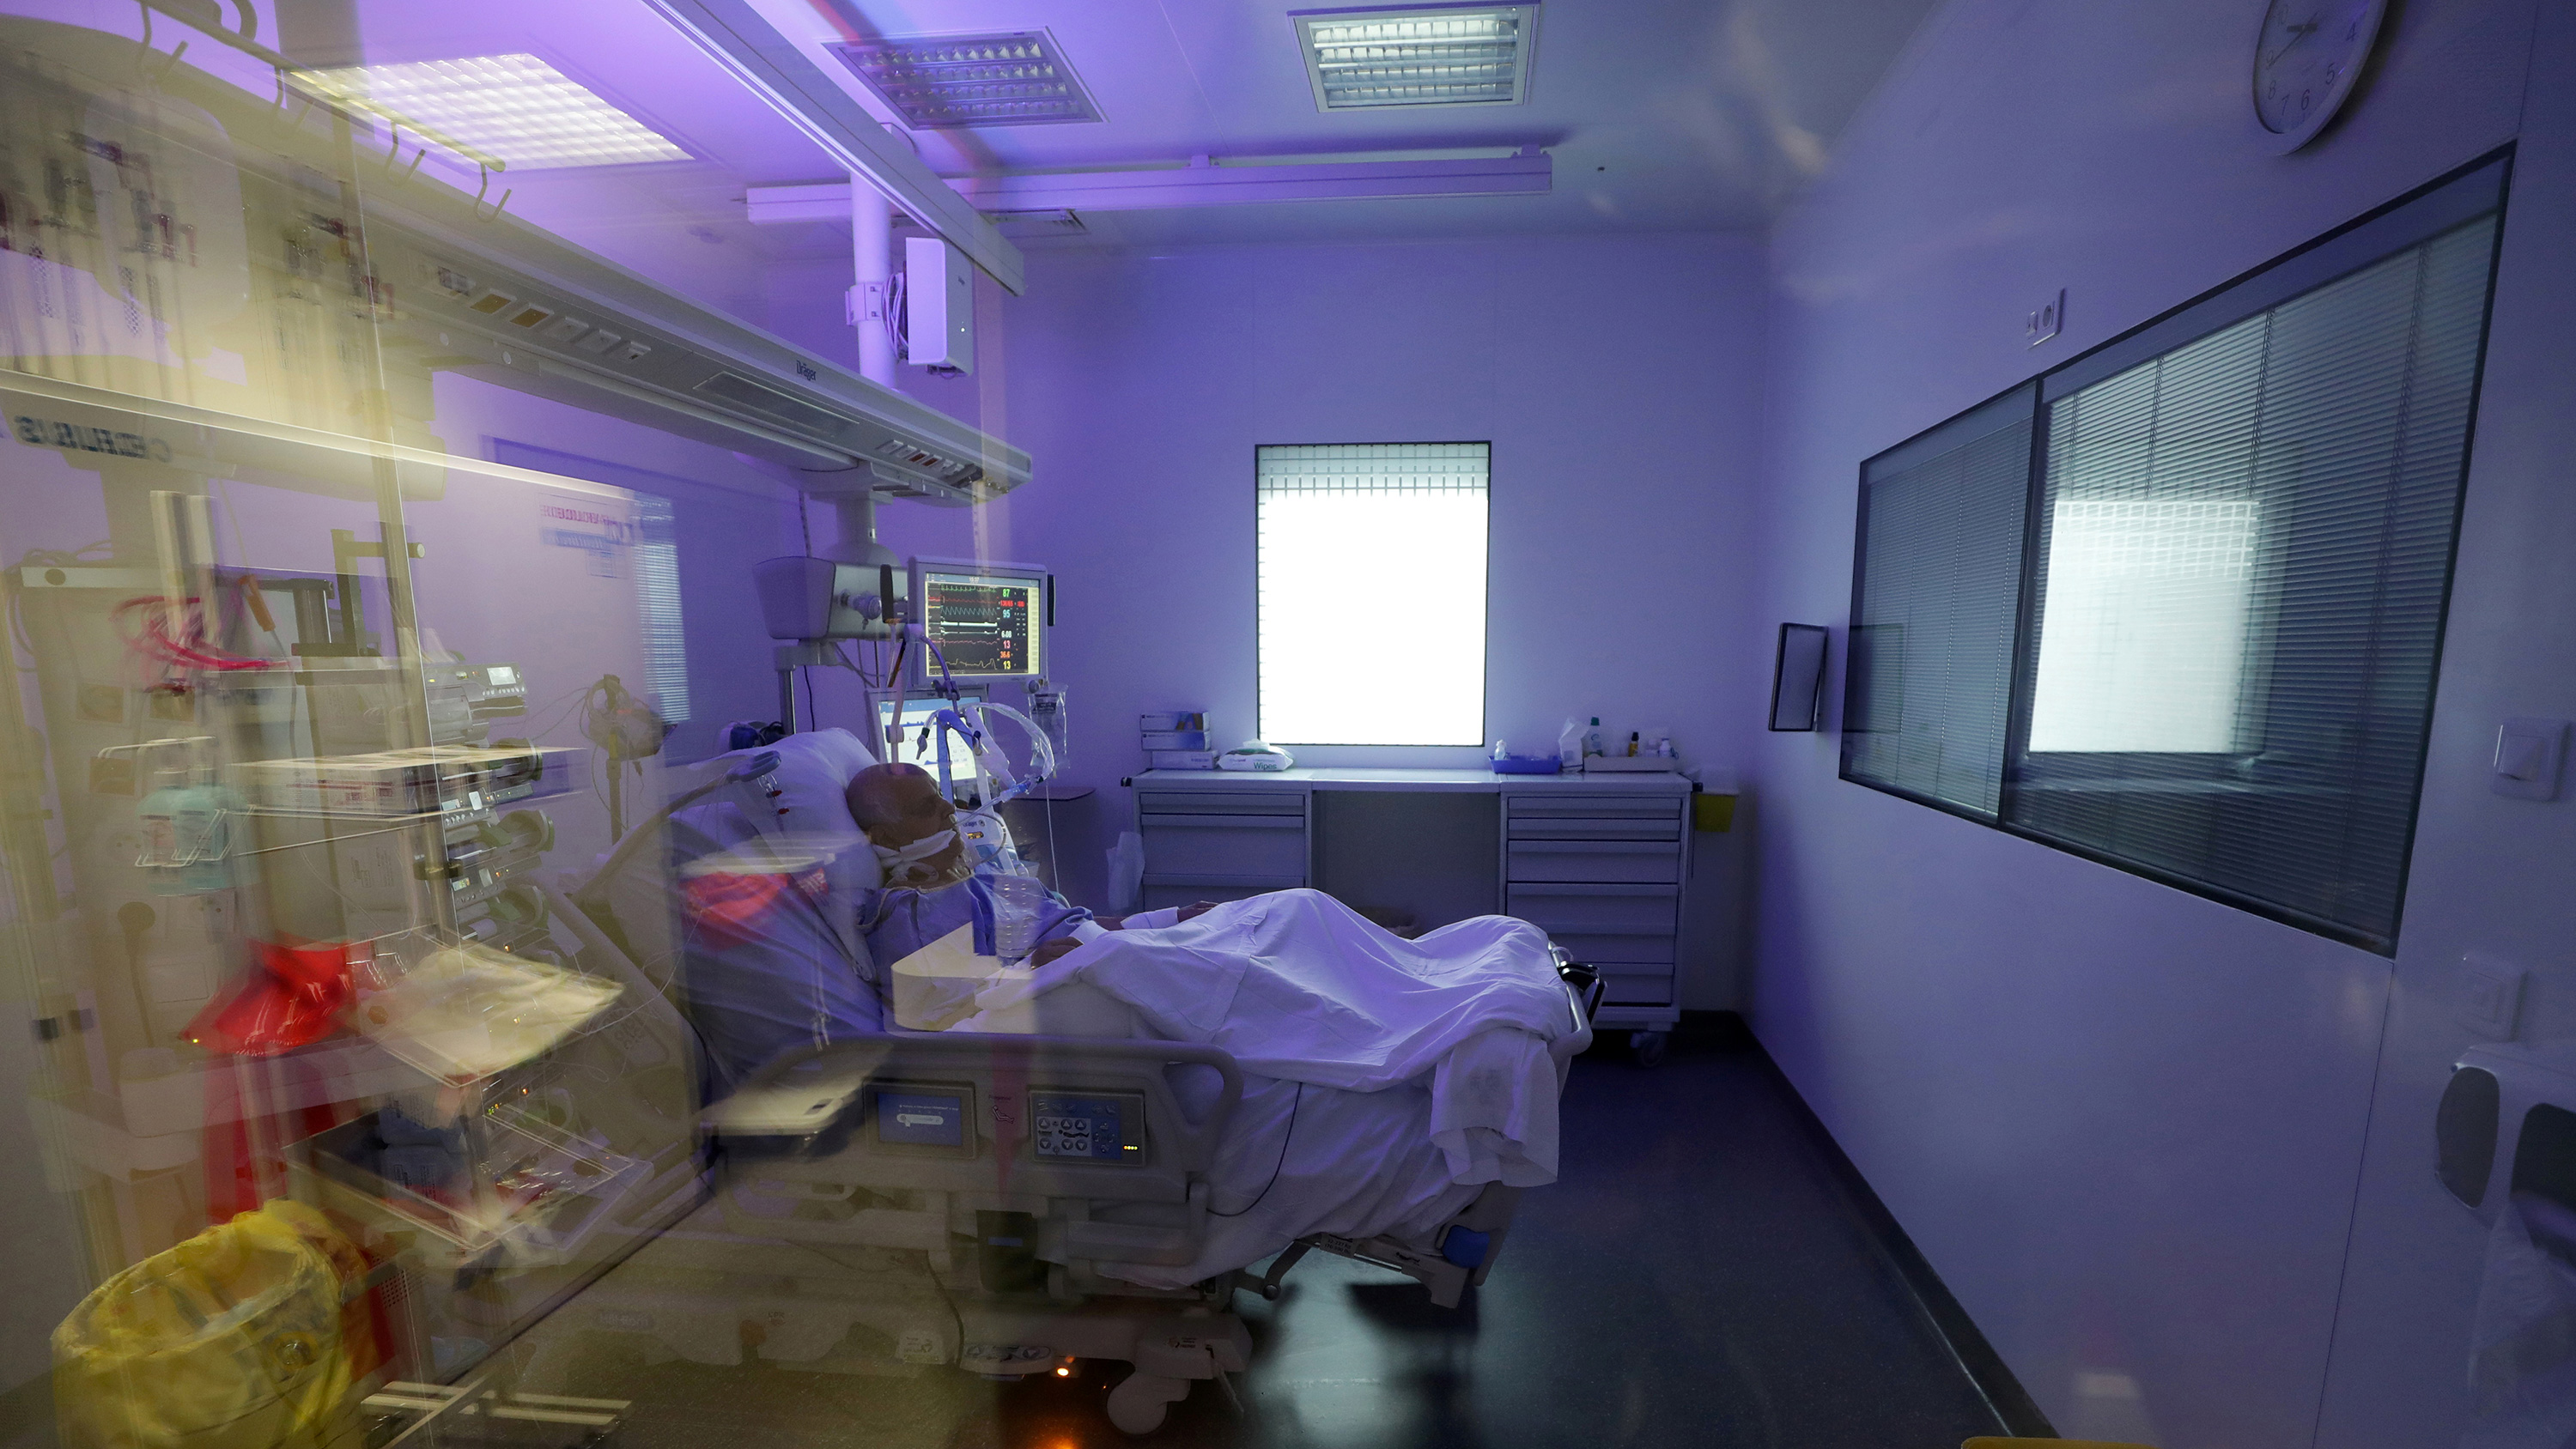 The photo shows a hospital room with a patient in a bed in the middle. The room is bathed in purple light.